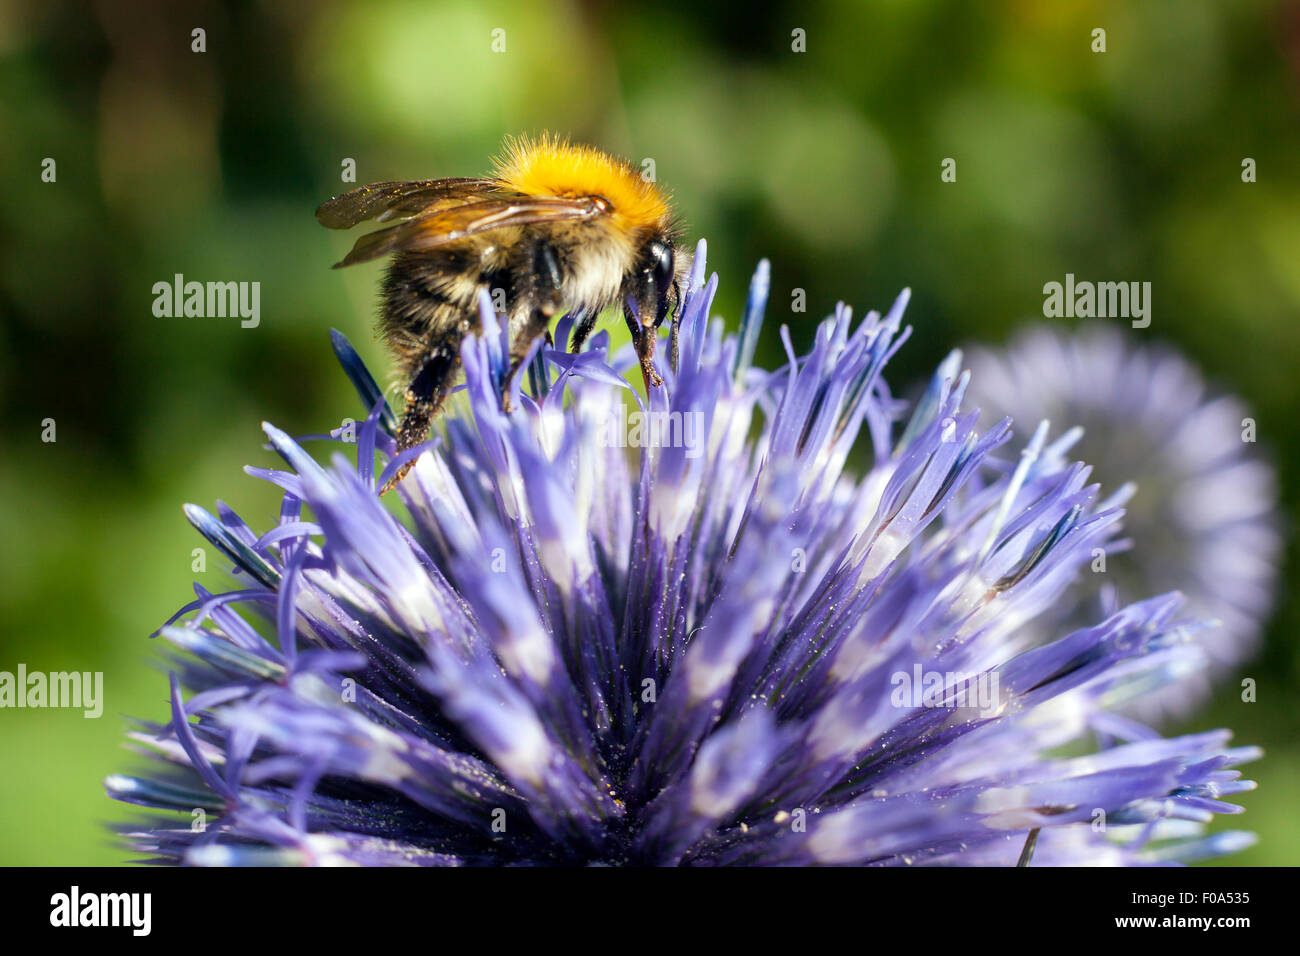 closeup of bumble bee on purple thistle or Echinops bannaticus - Stock Image